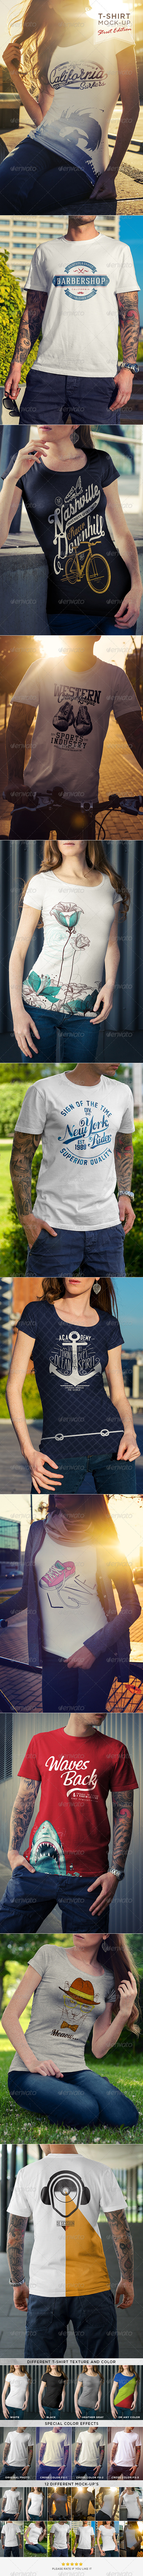 GraphicRiver T-Shirt Mock-Up Street Edition 7842645